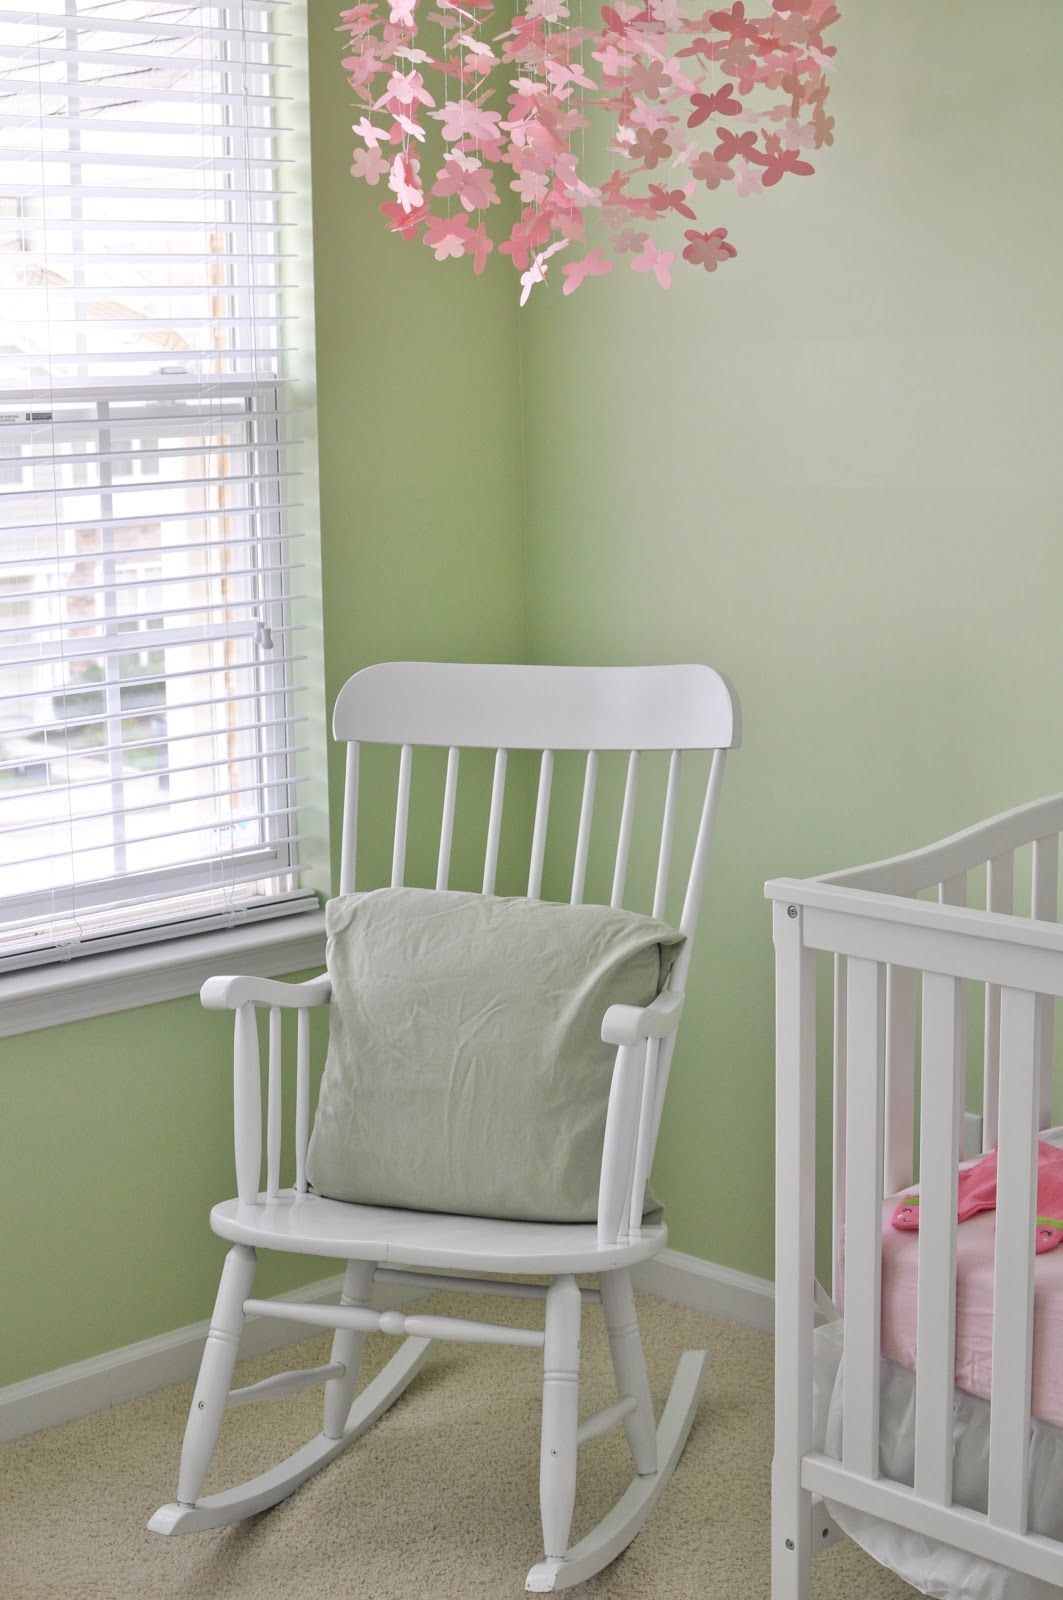 Babyzimmereinrichtung Nursery Sofa Bed - Google Search | Rocking Chair Baby Room